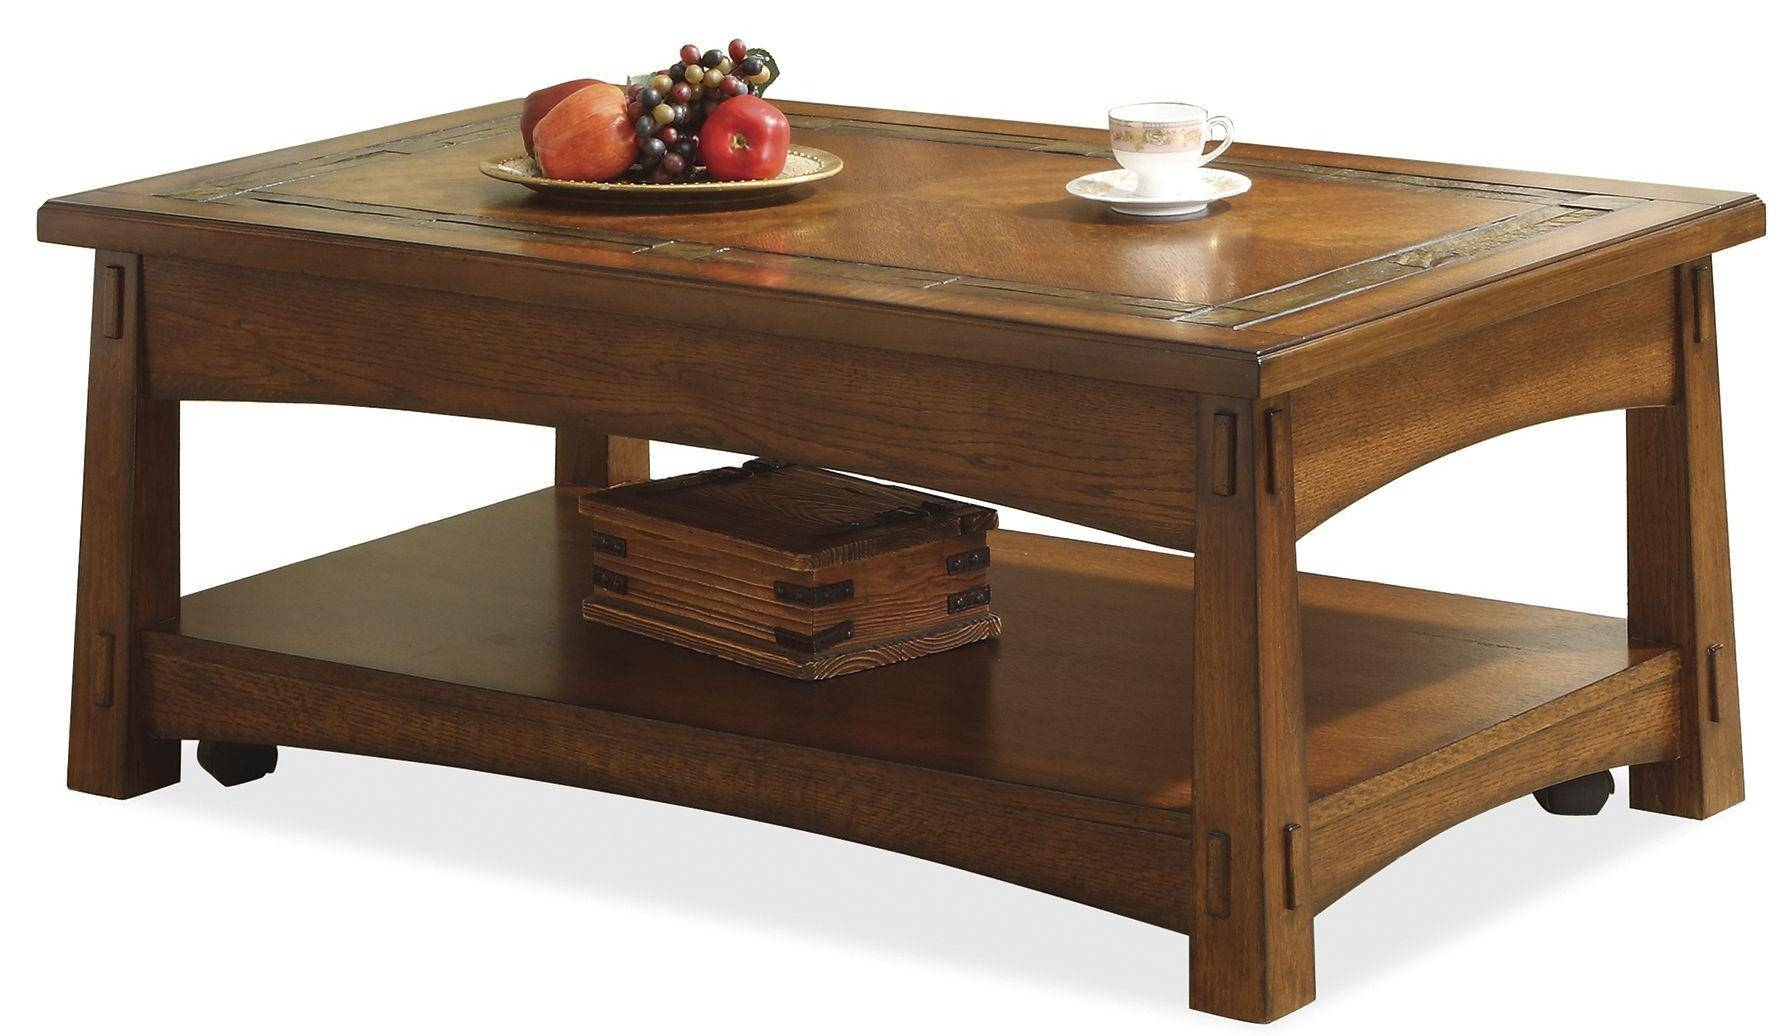 Riverside Furniture Craftsman Home Lift-Top Coffee Table With within Lift Coffee Tables (Image 20 of 30)